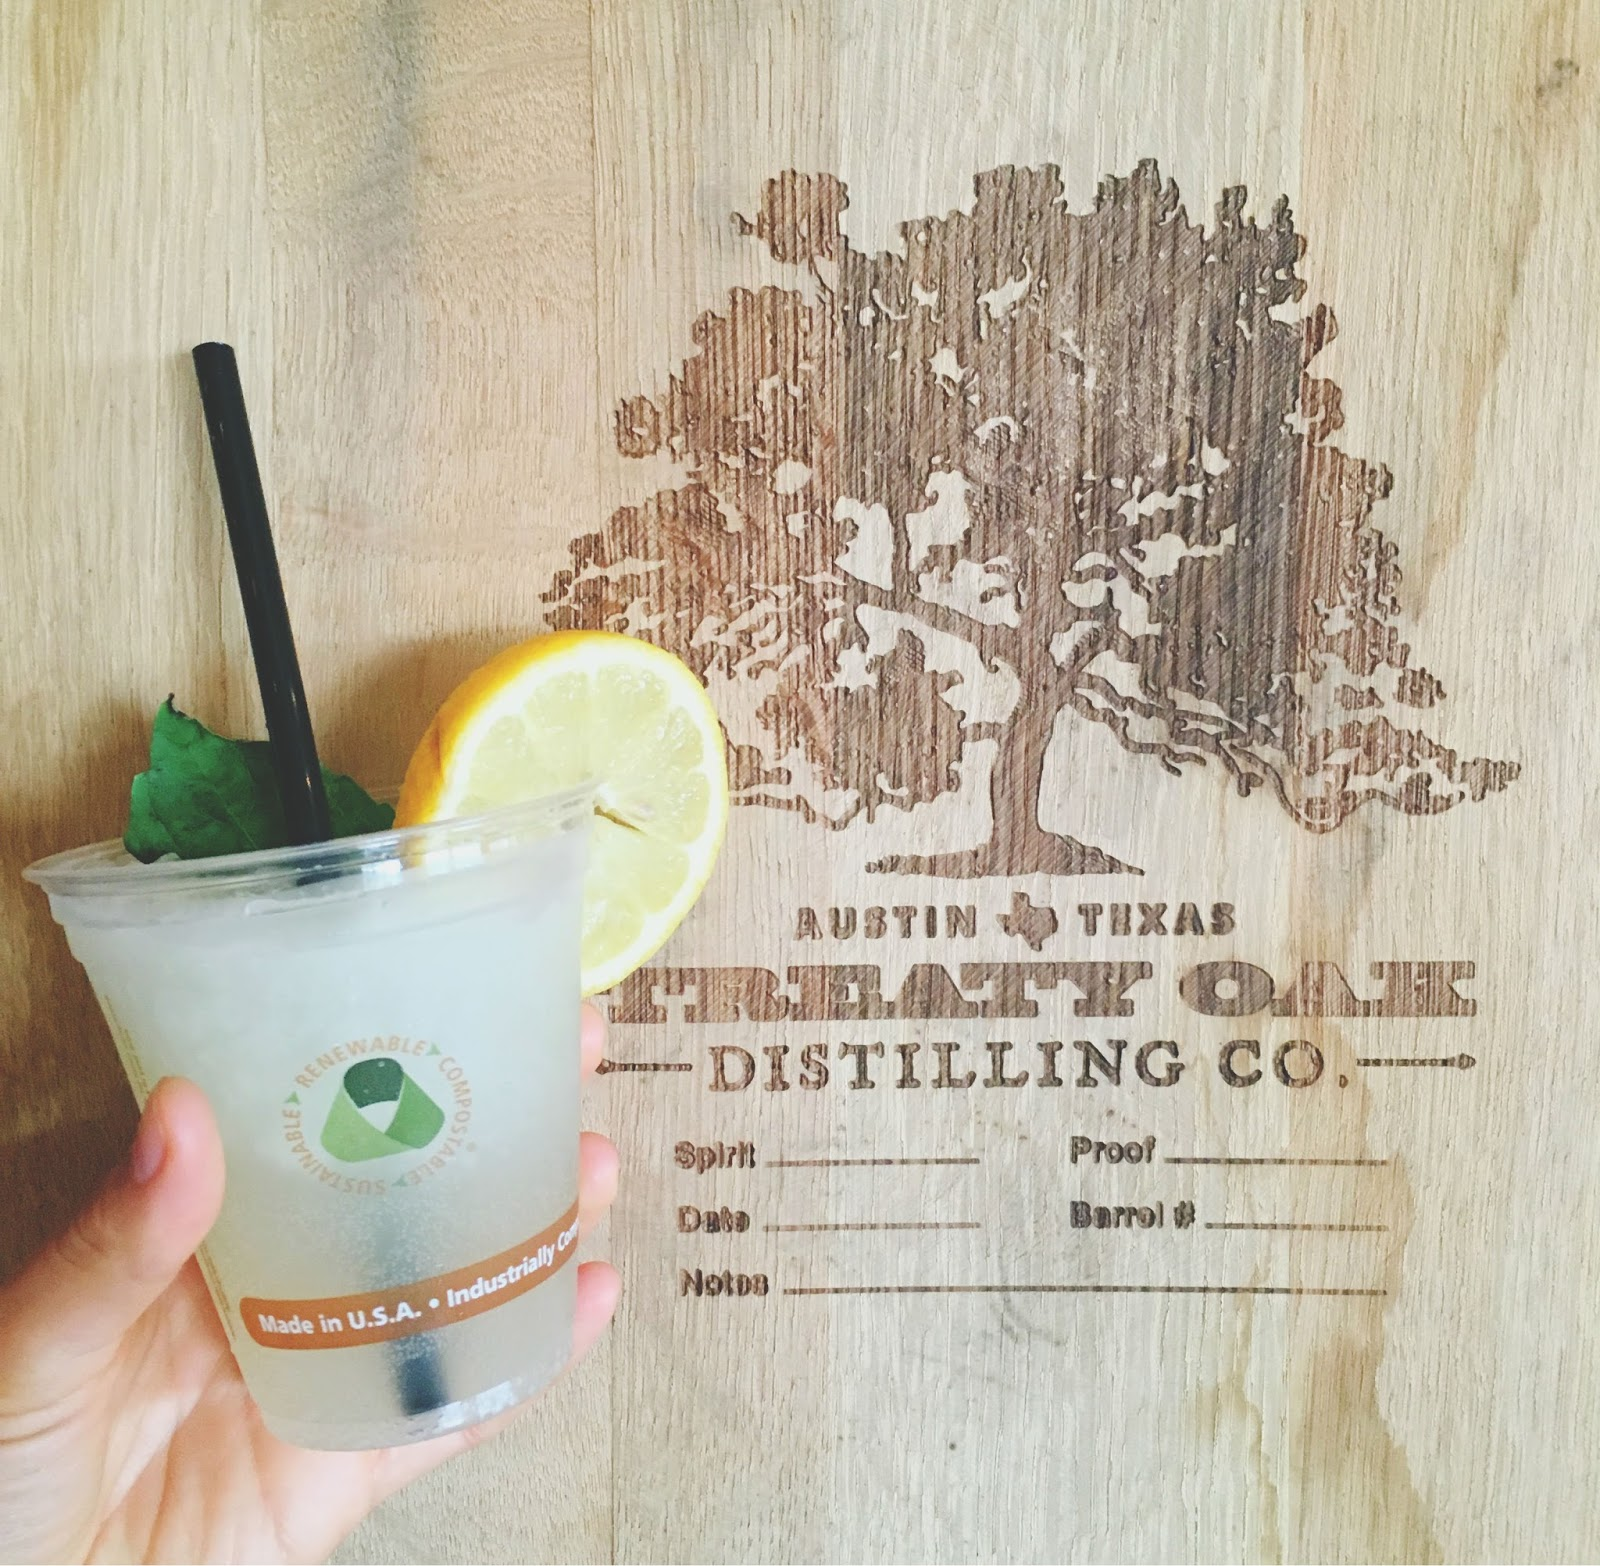 Southpaw cocktail at Treaty Oak Distilling near Austin, Texas